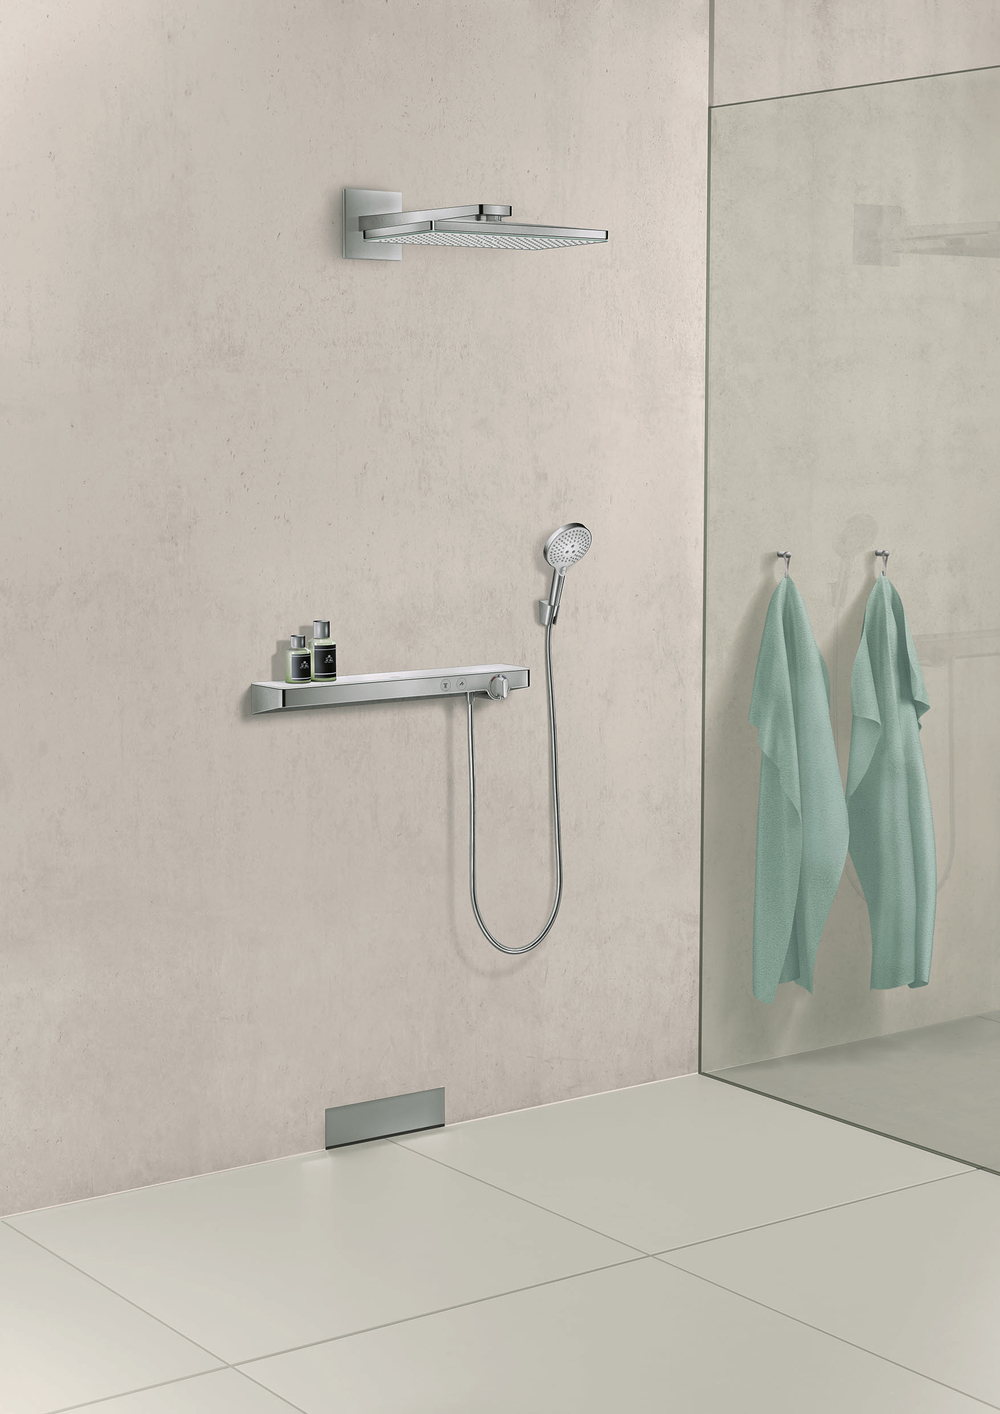 Hansgrohe_RainmakerSelect_460_1_Jet_ShowerTablet_Select_700.jpg